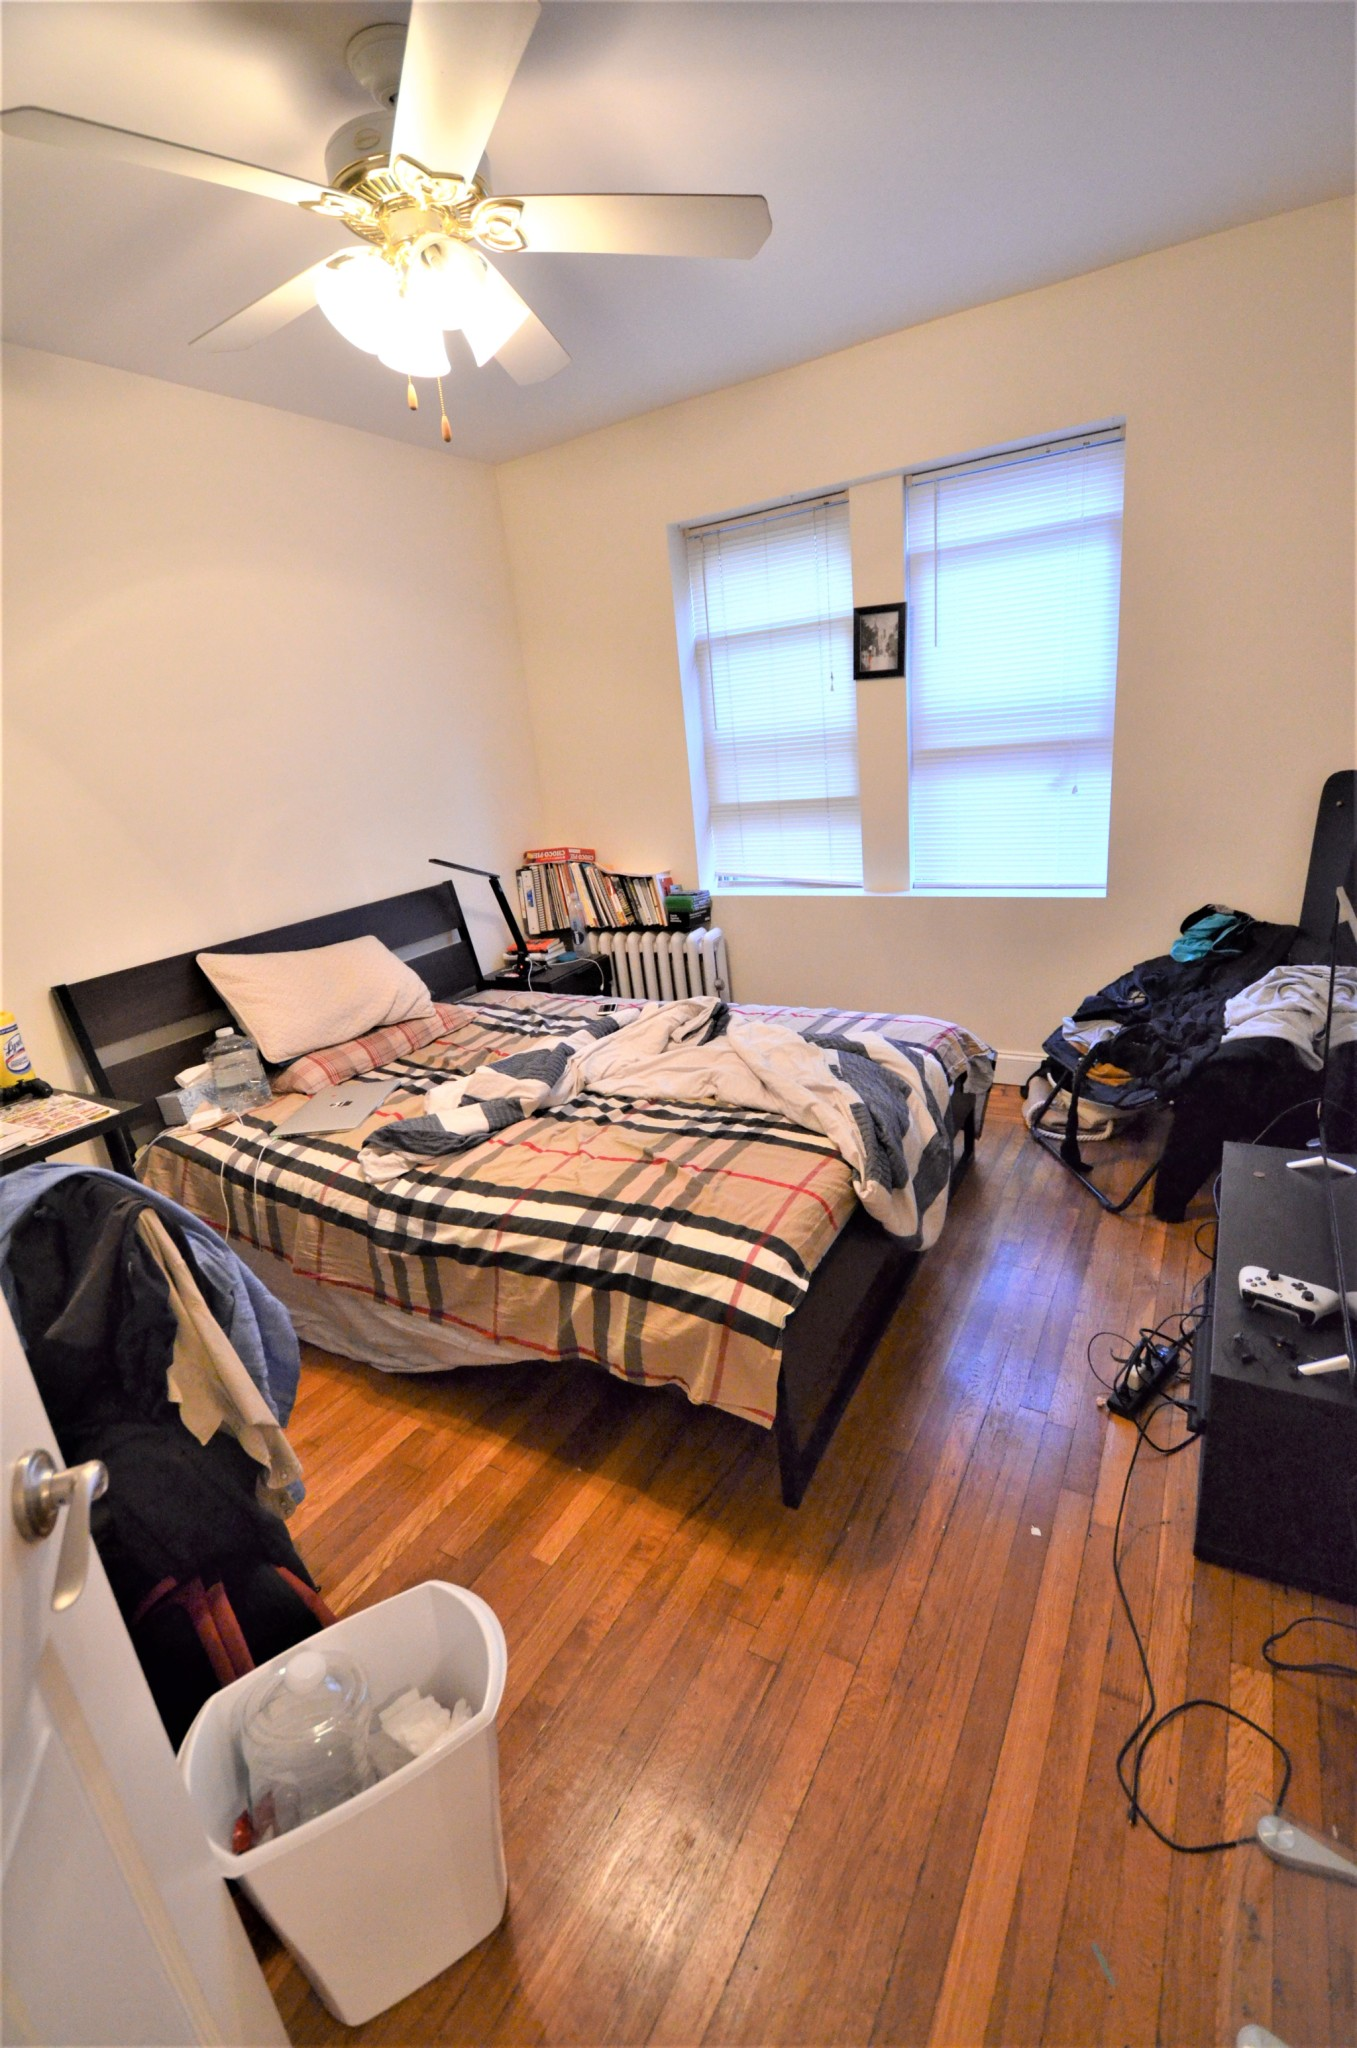 Avail 9/1 - Awesome, Clean, Renovated 1 BR